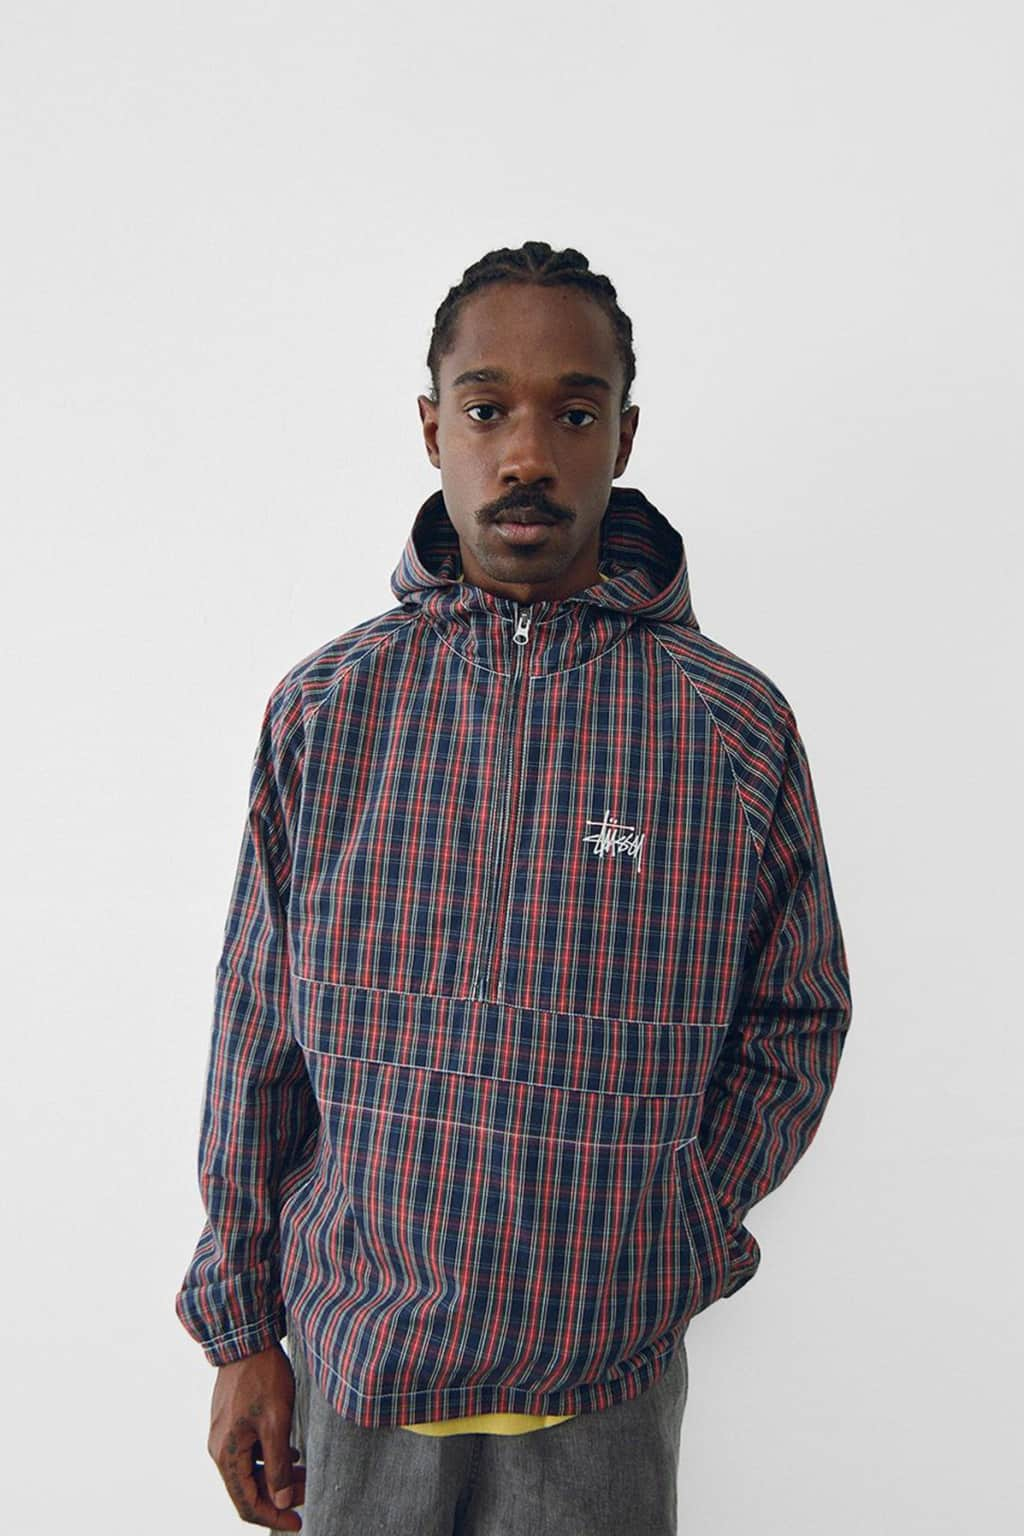 Spring '21 Arrivals from Stüssy